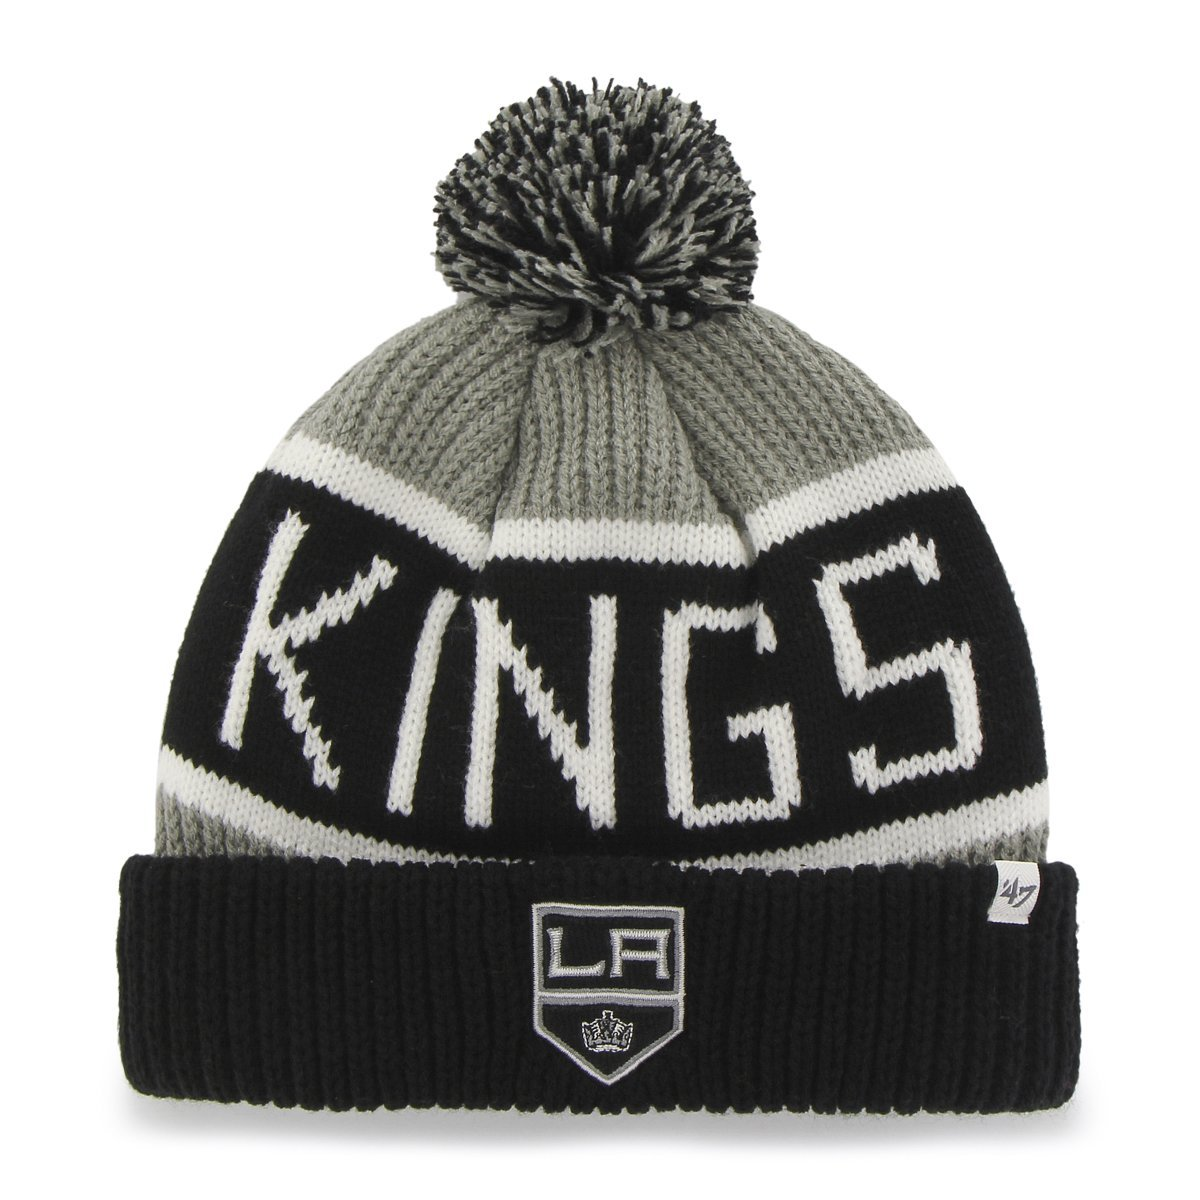 '47 NHL Los Angeles Kings Calgary Bobble Knit Hat - Ice Hockey Winter Hat, Black / Grey 47 Brand